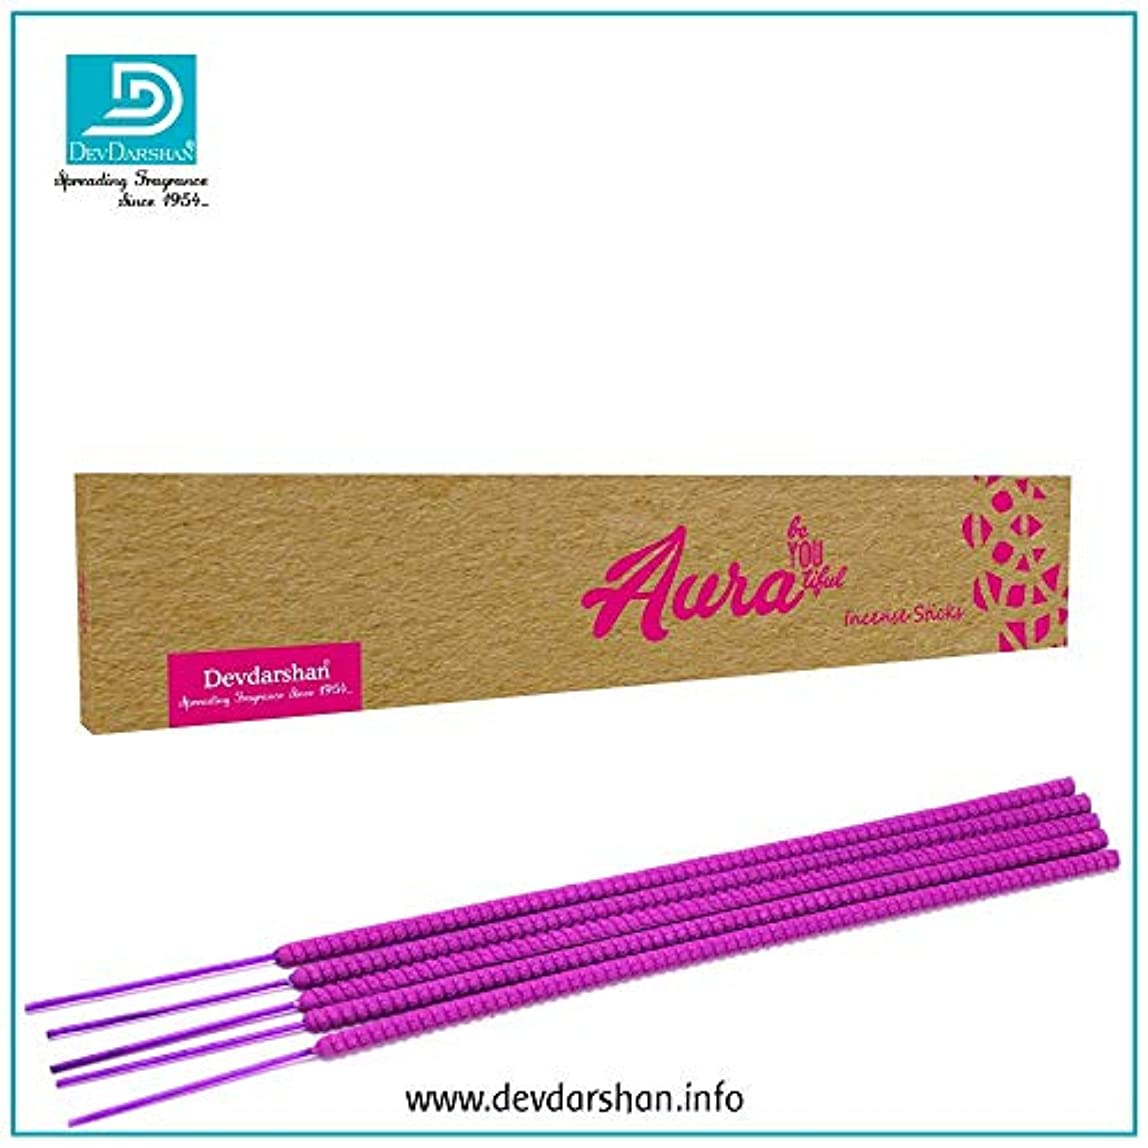 にはまって拒絶マッシュDevdarshan Aura Exotic 16 Inch Incense Sticks with 2 Hours Burning (2 Packs of 5 Stick Each)